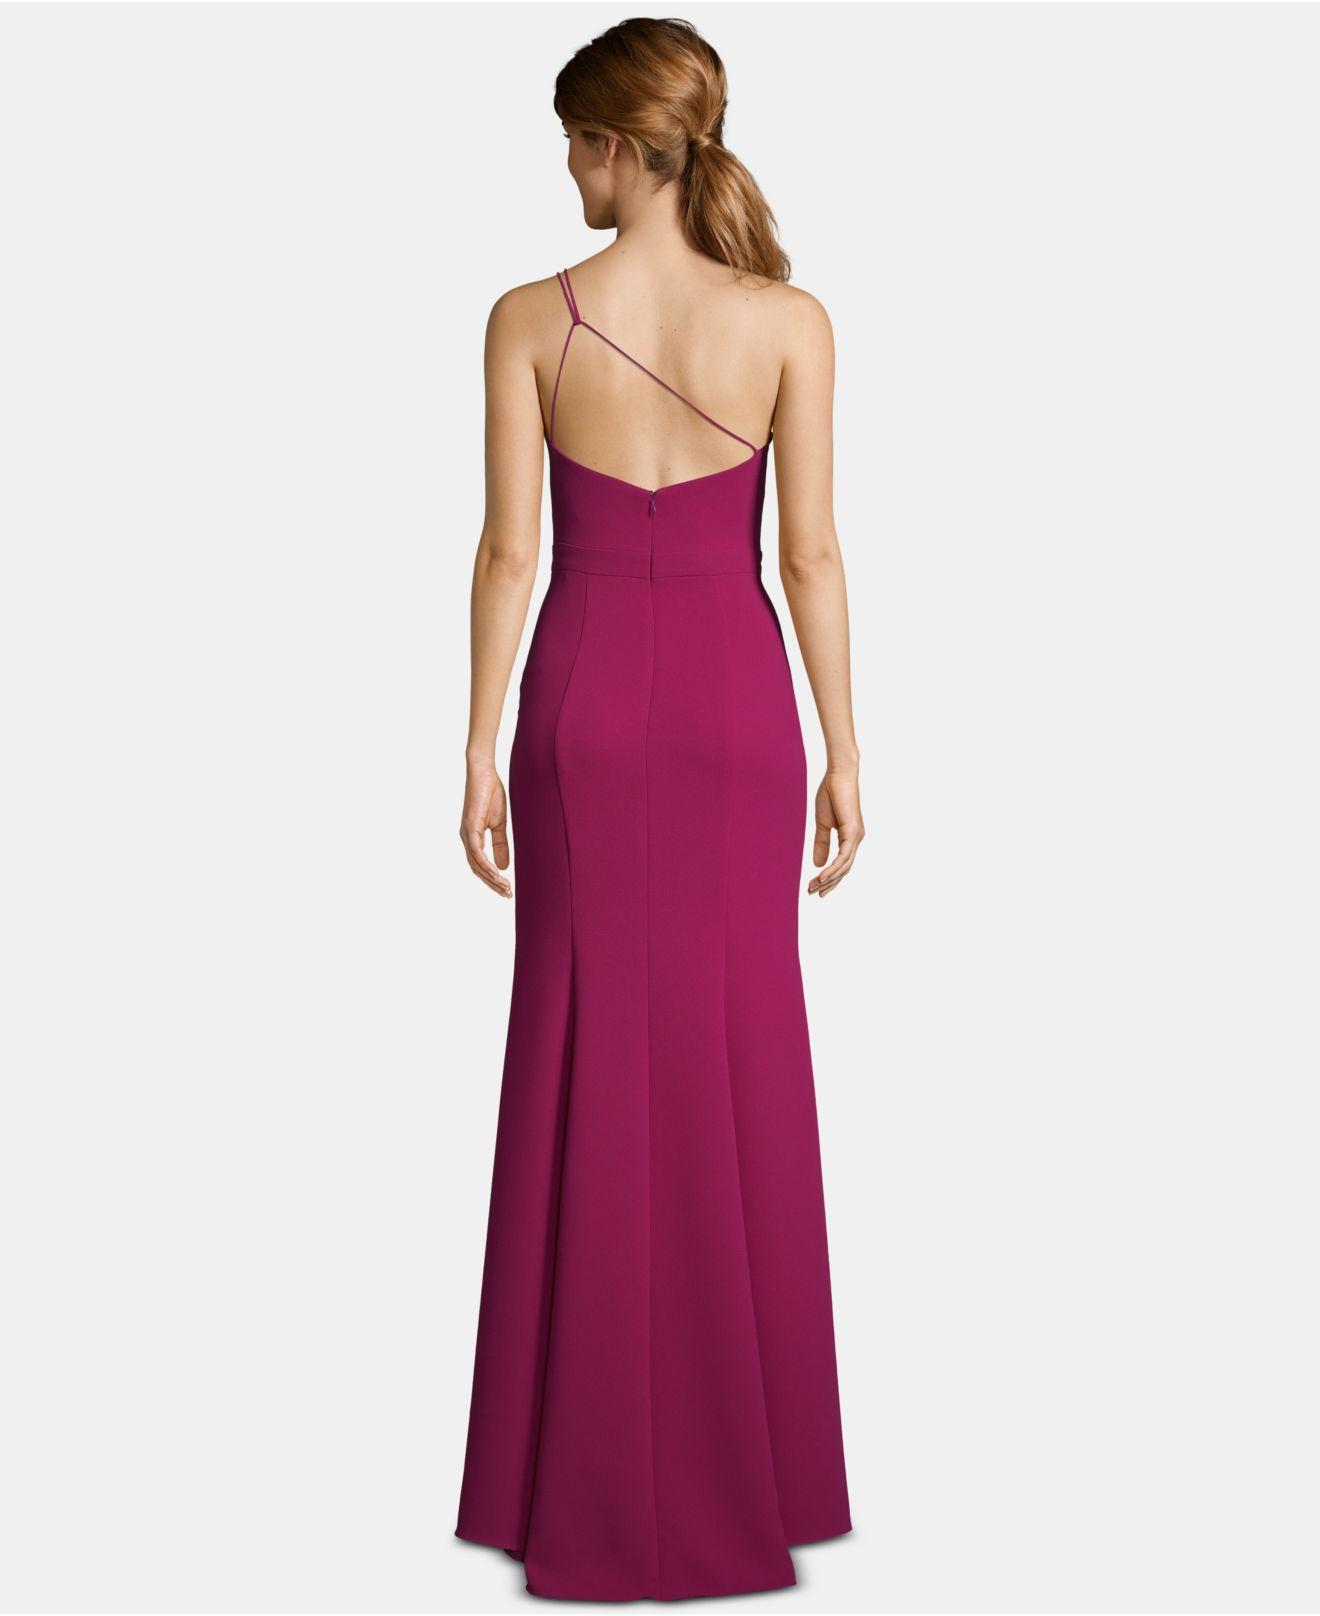 051435836045 Lyst - Xscape One-shoulder Crepe Gown in Purple